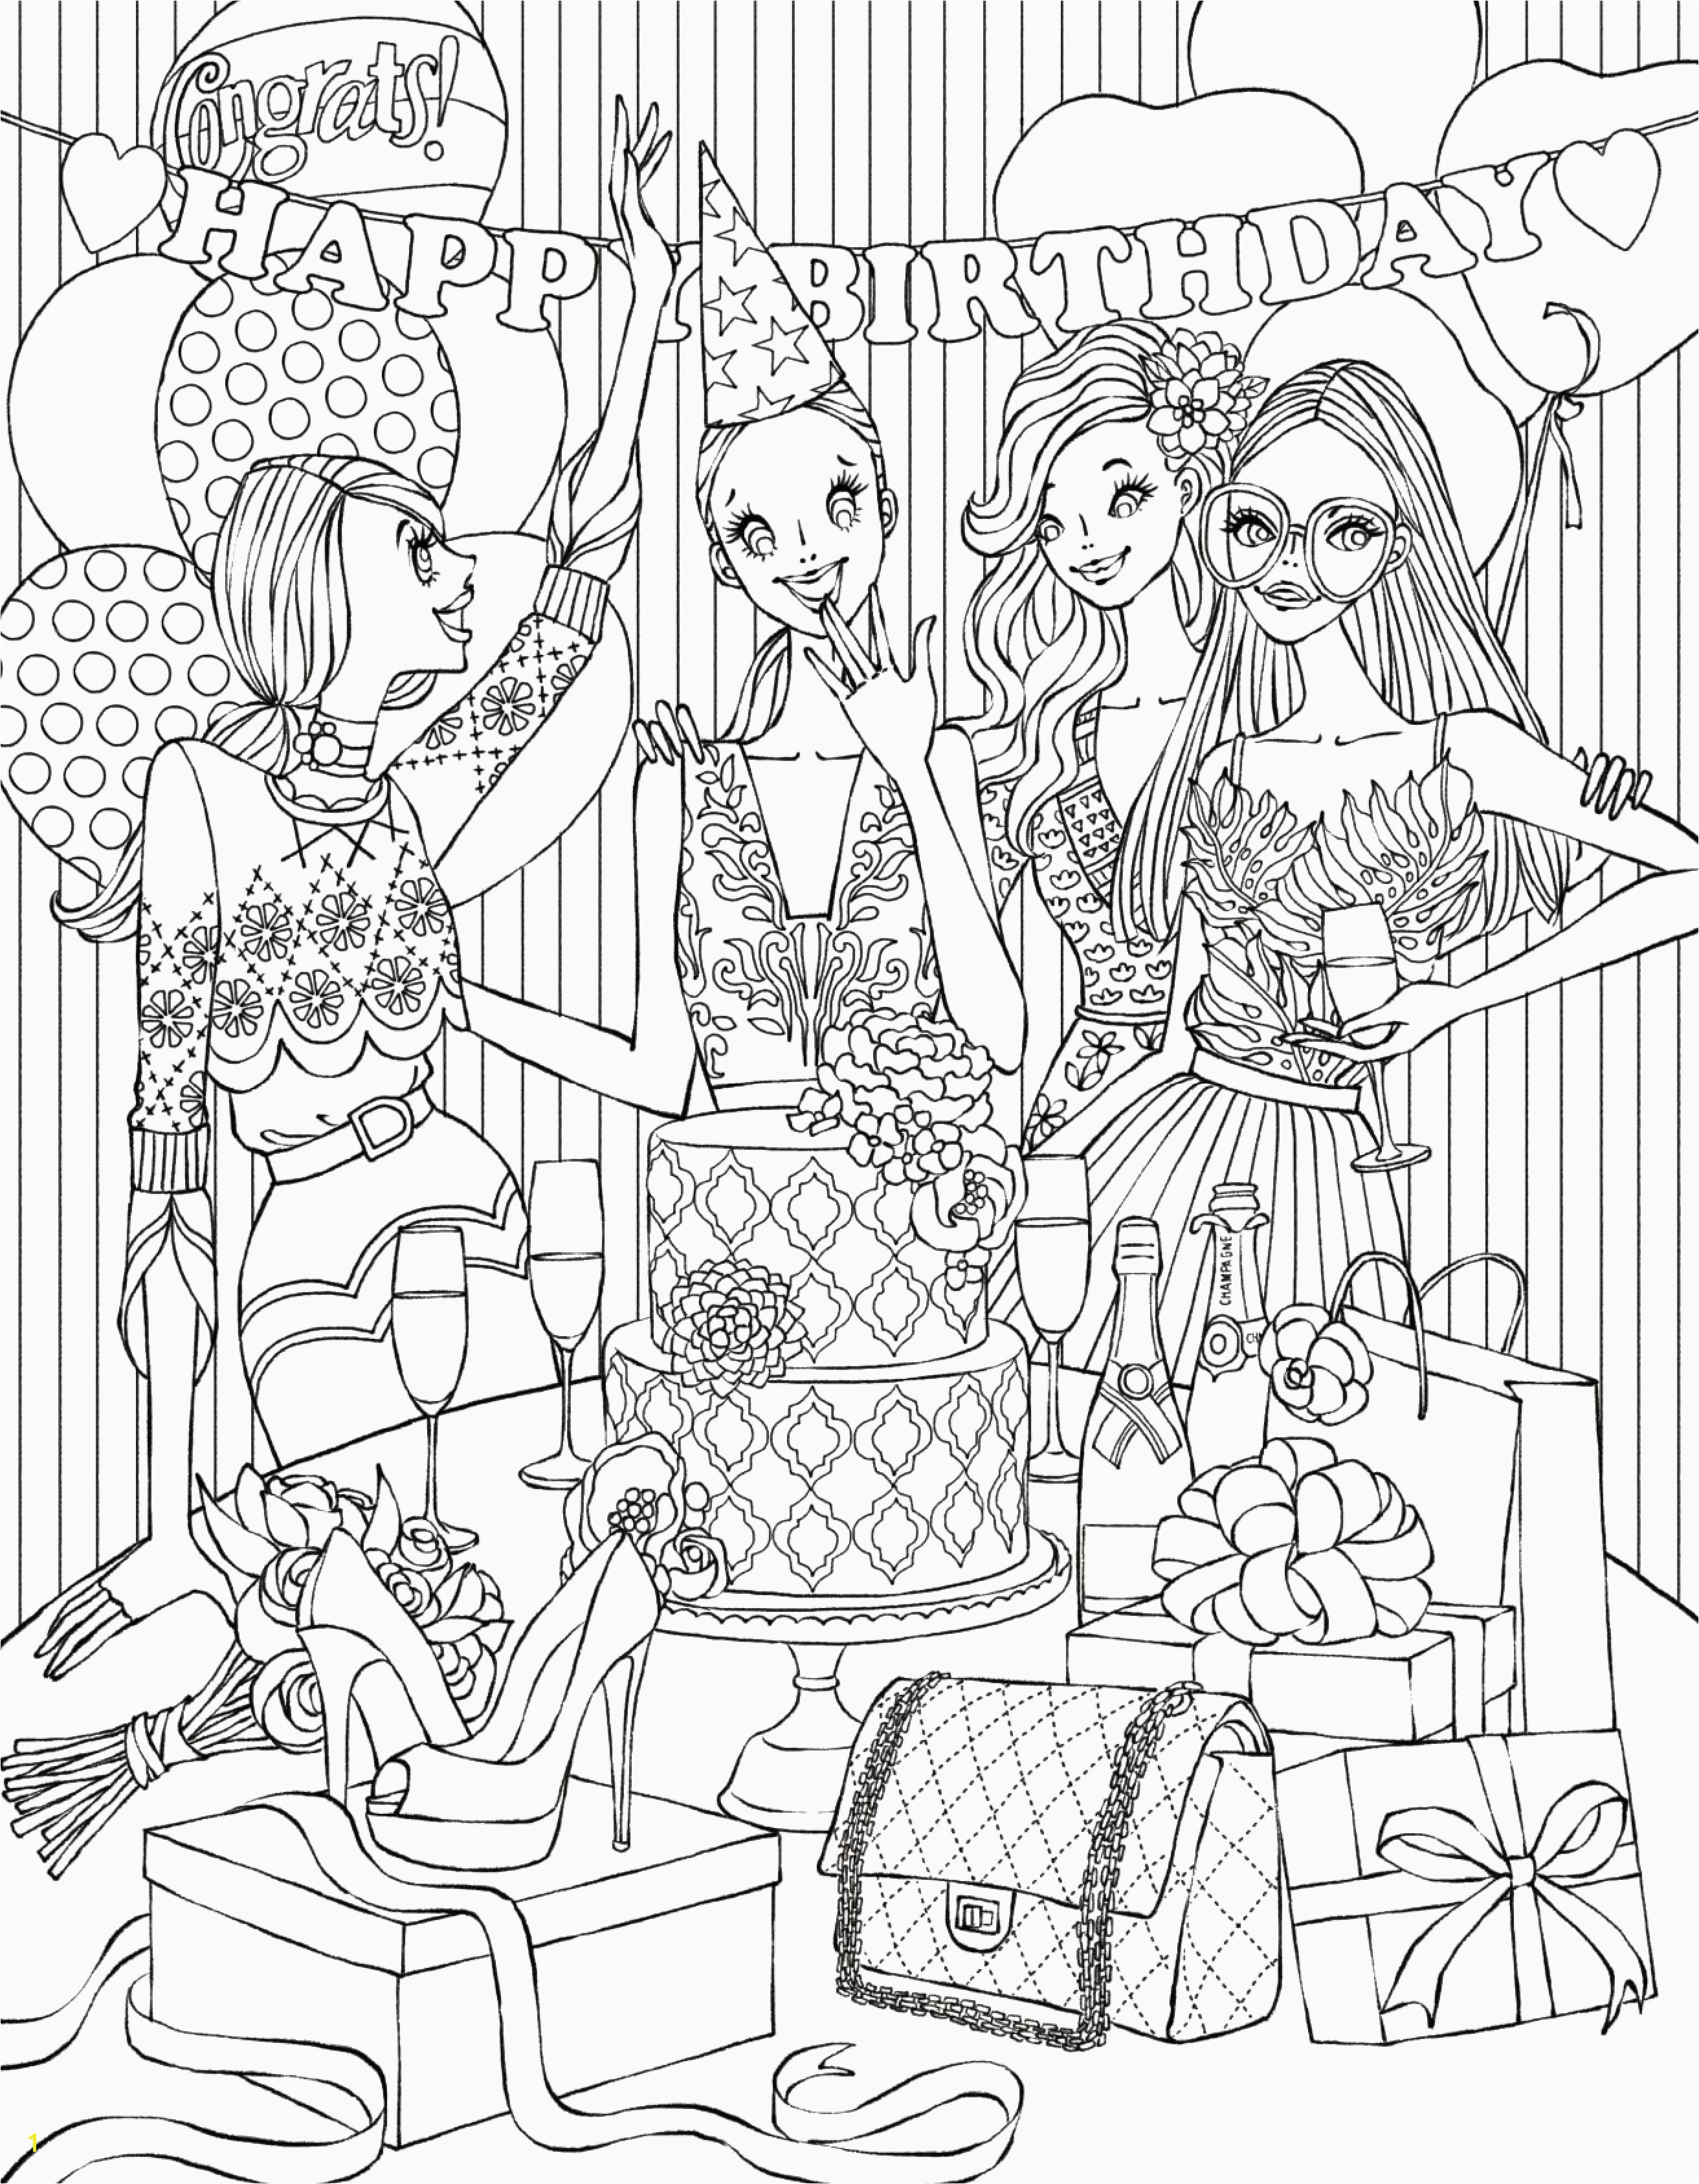 Printable Tsum Tsum Coloring Pages Lovely It Coloring Pages Beautiful Number 6 Tsum Tsum Coloring